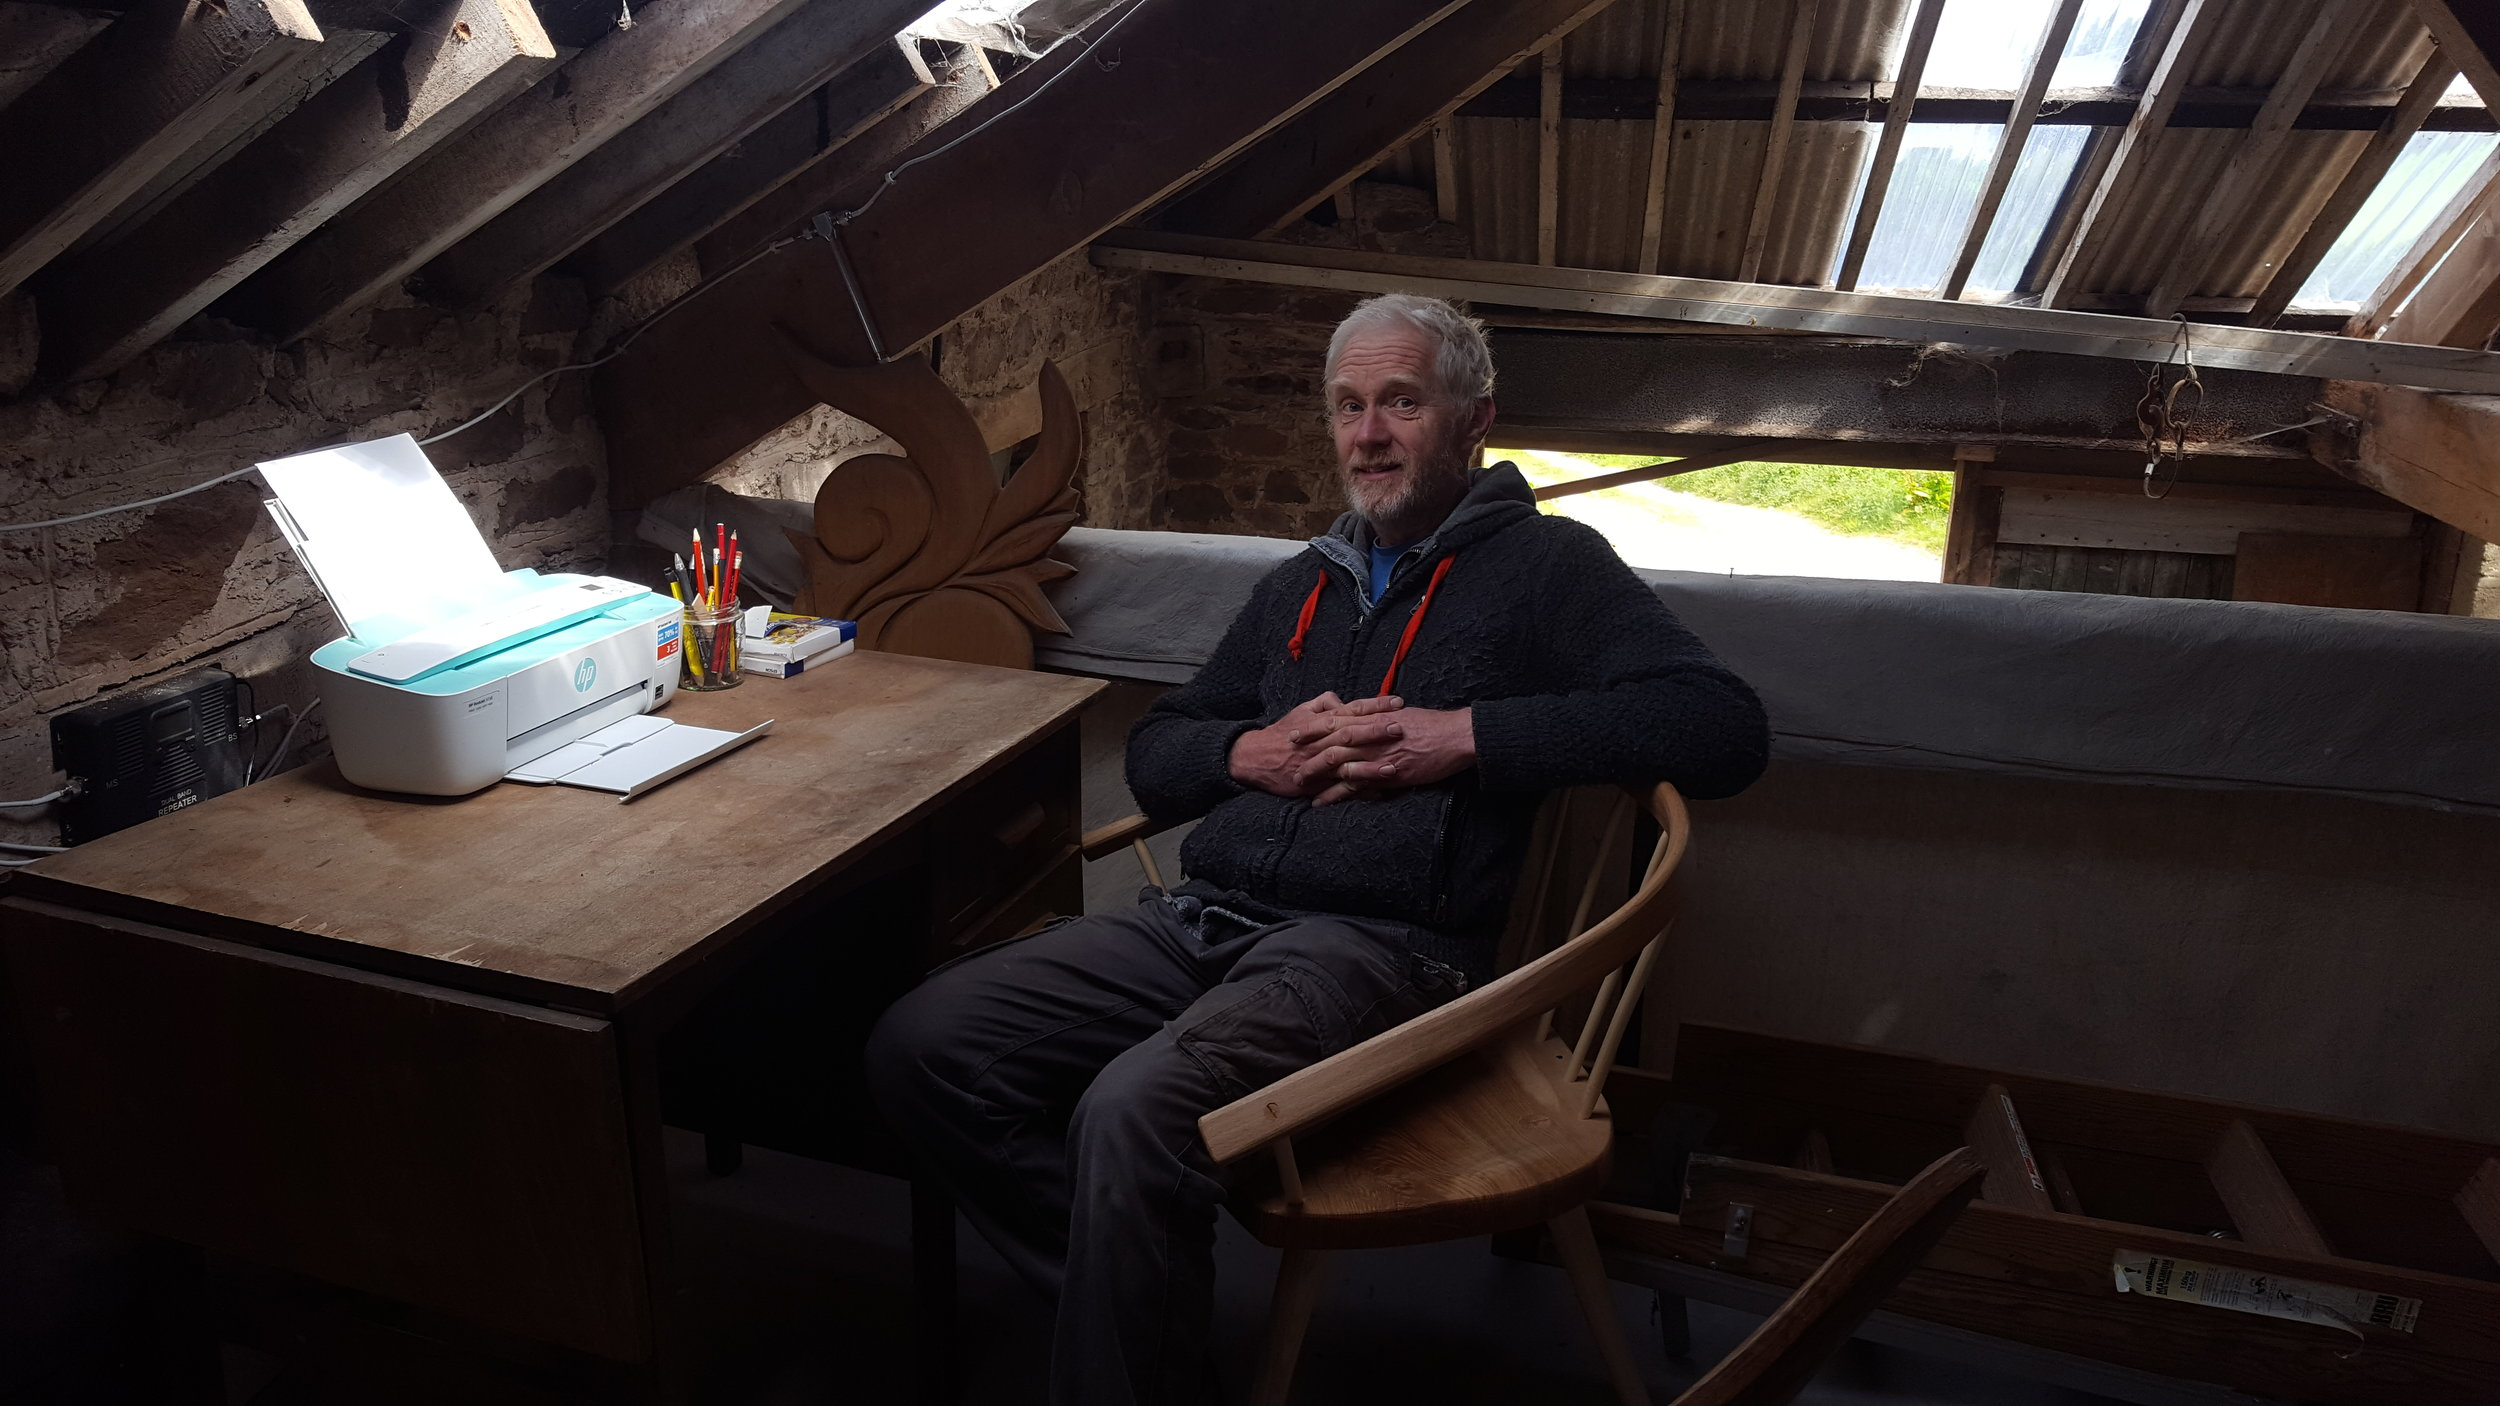 The new office, on a mezzanine above the Horse Engine room at the Devon Green Wood Centre.